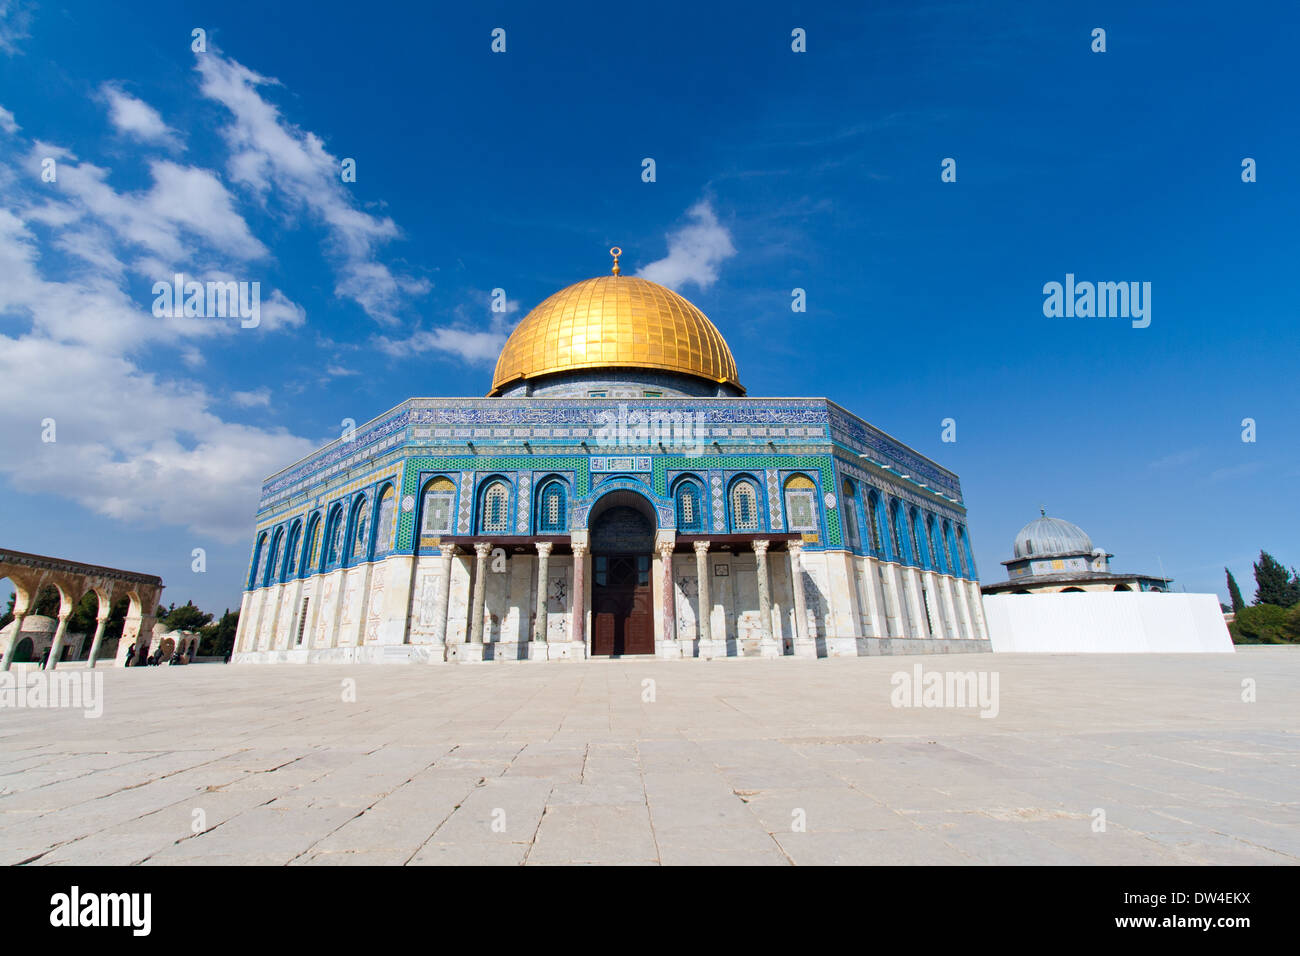 The Dome of the Rock on the Temple Mount , Jerusalem, Israel - Stock Image